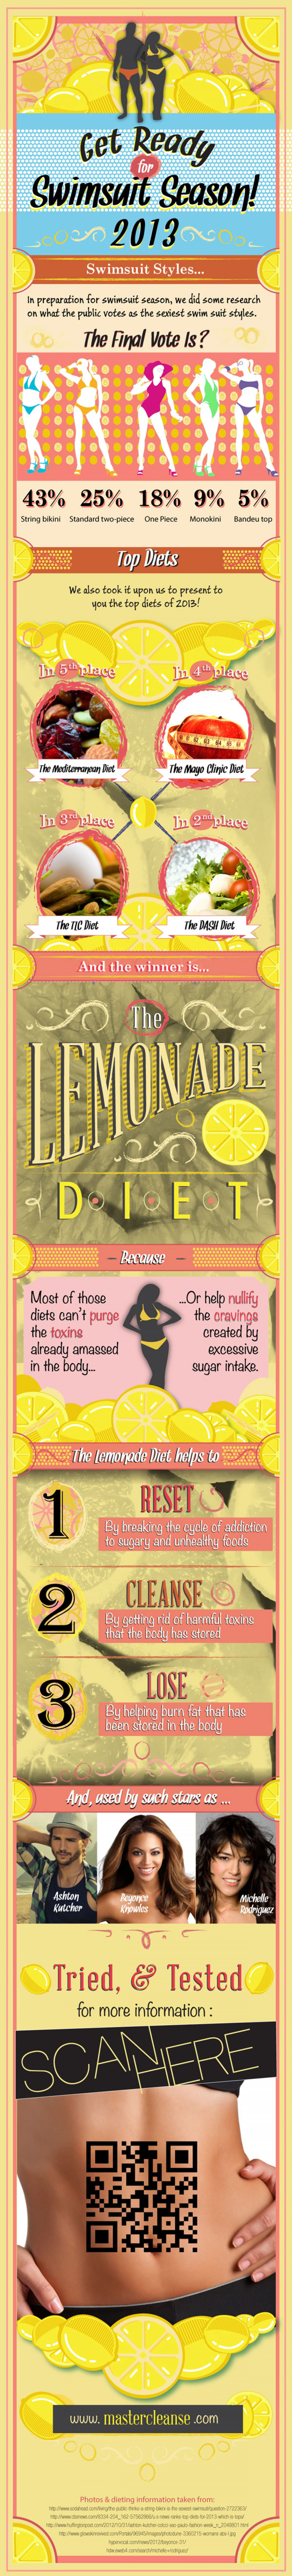 2013 Swimsuit Season Master Cleanse Infographic Infographic